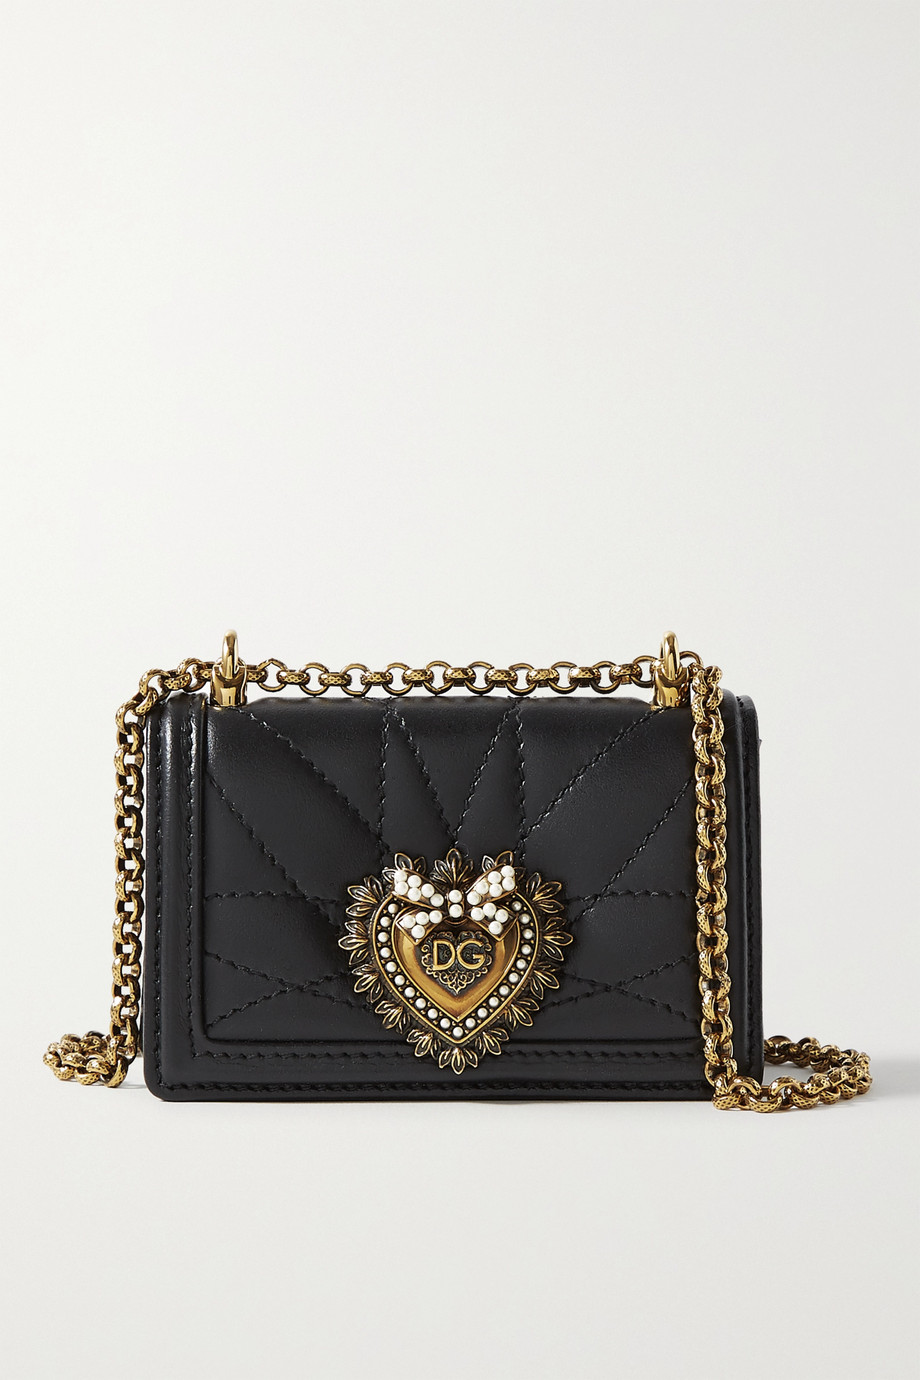 Dolce & Gabbana Devotion micro embellished quilted leather shoulder bag